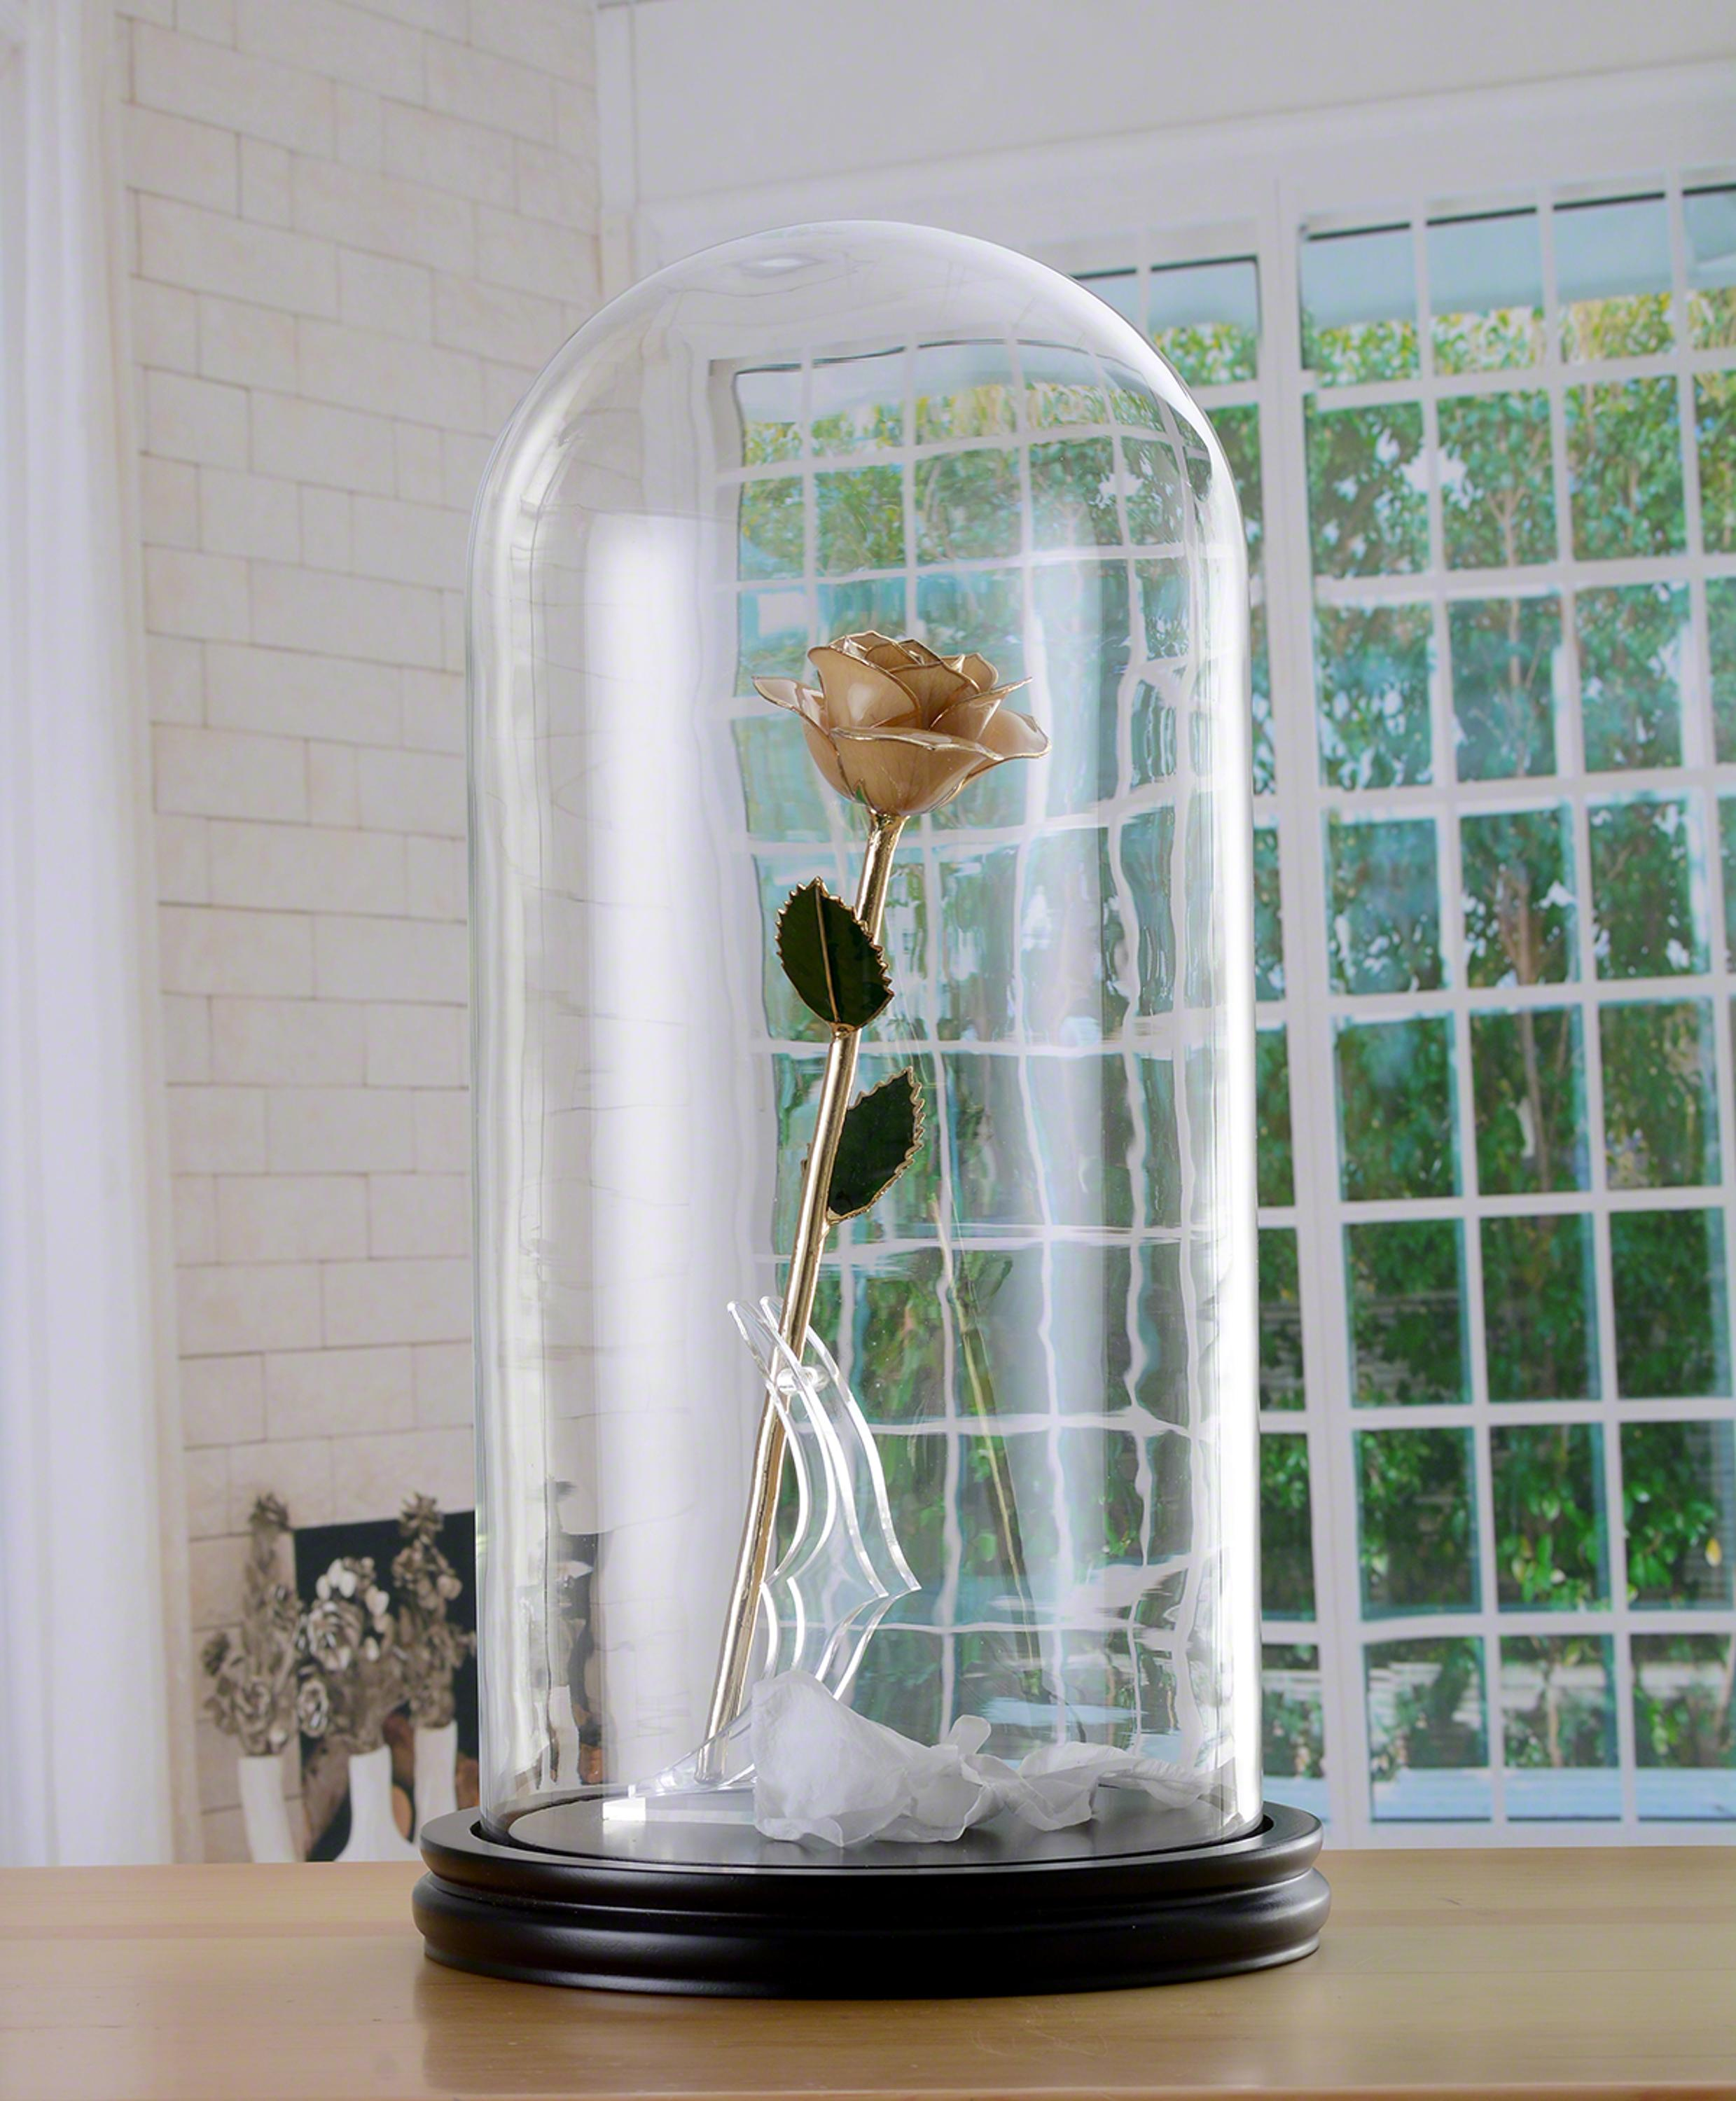 D20xH40cm-Glass-Dome-With-Wood-Base--Natural-White-24K-Plated-Gold-Preserved-Rose-.jpg